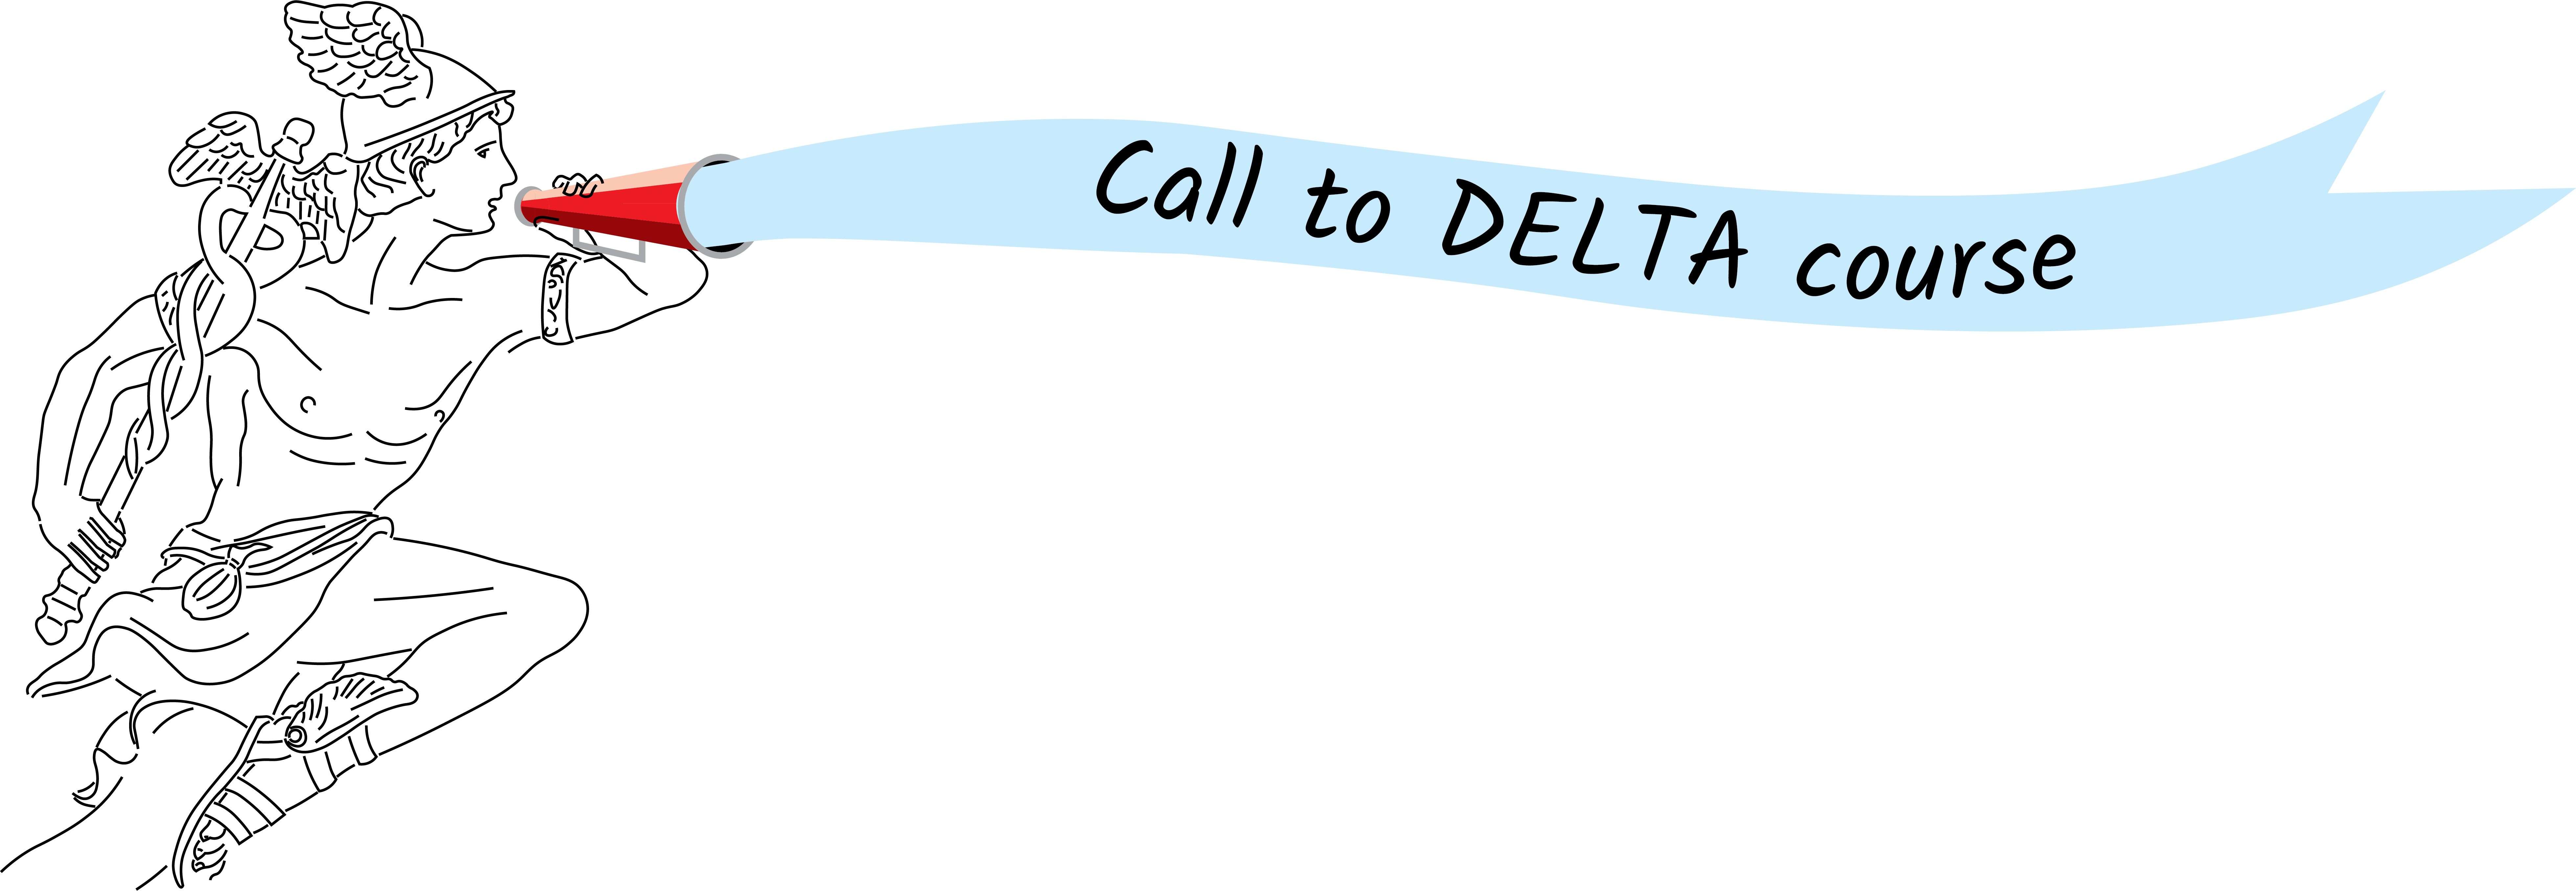 call to DELTA course